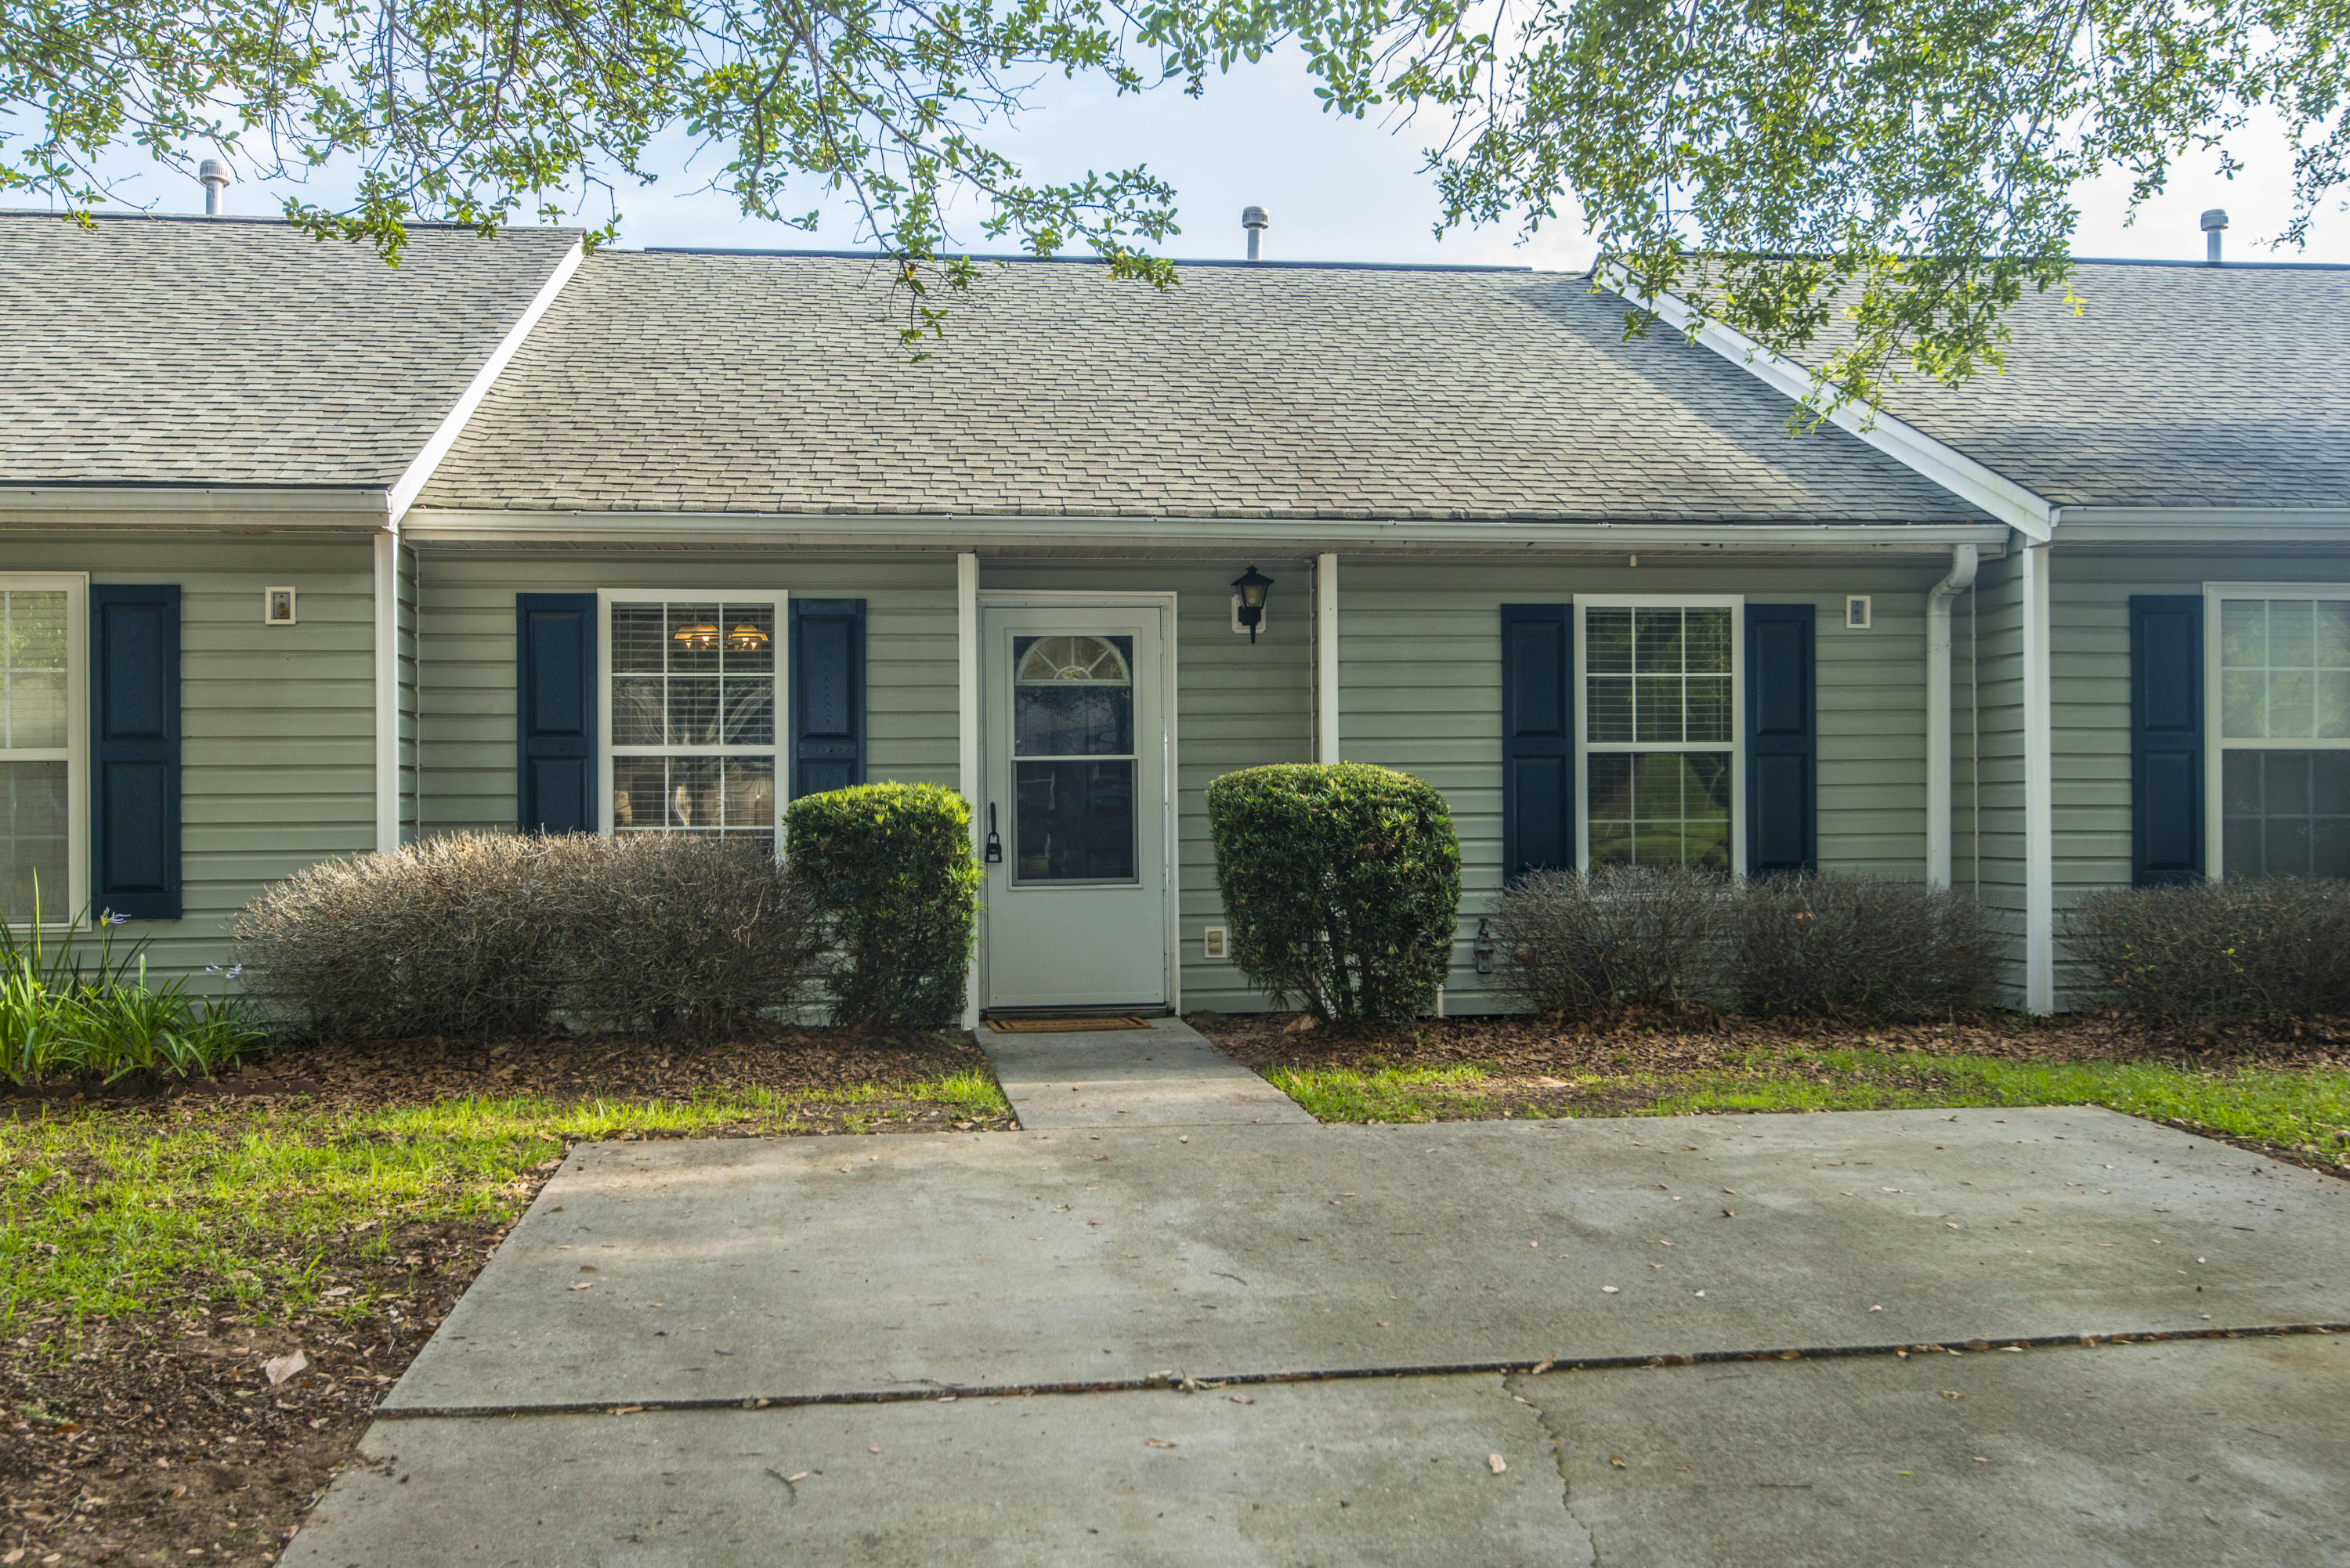 Meridian Place Homes For Sale - 1274 Apex, Charleston, SC - 30